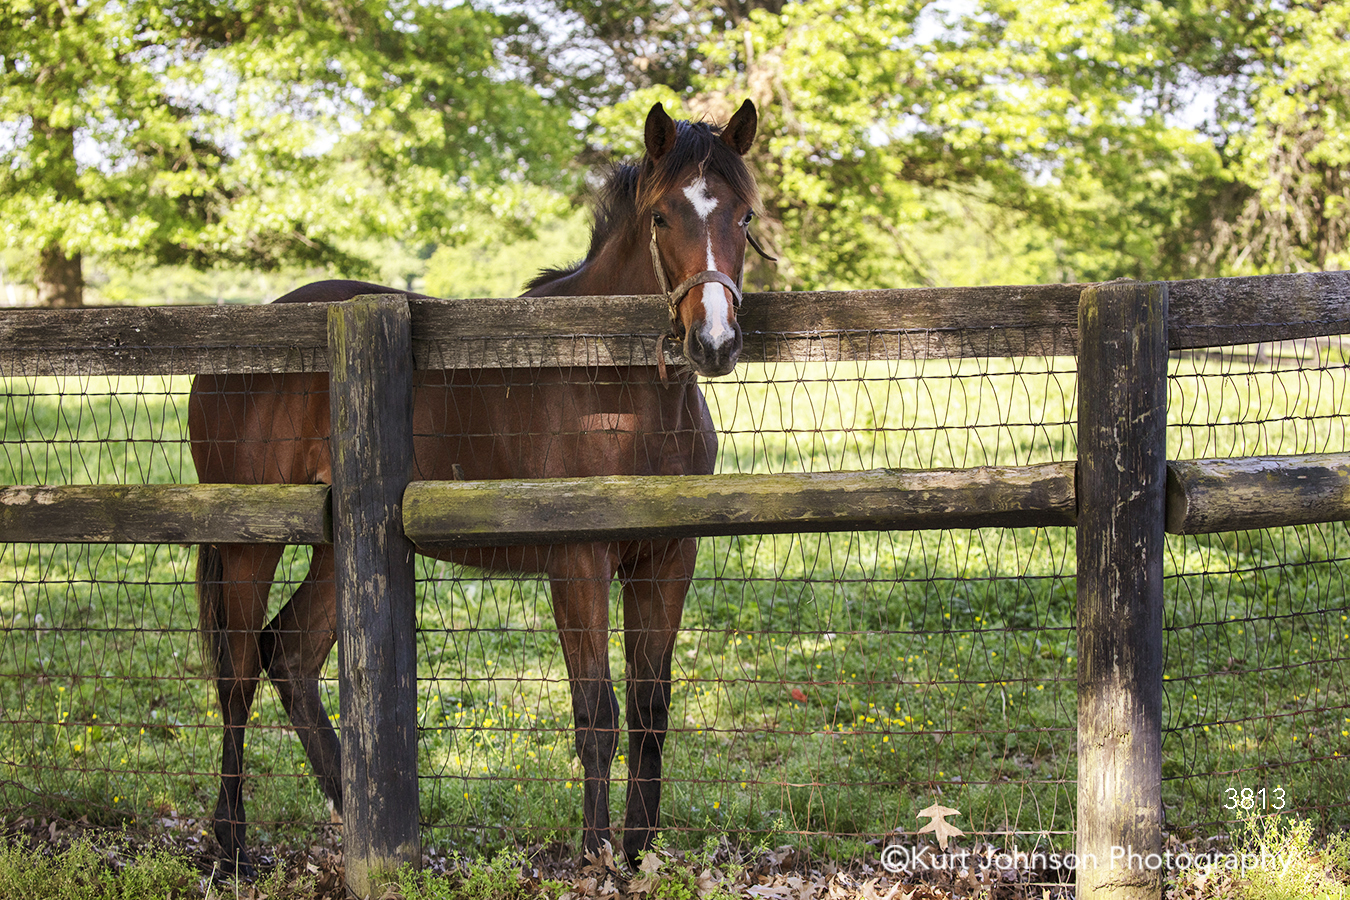 green grass grasses brown horse wood fence animal wildlife horses farm field midwest